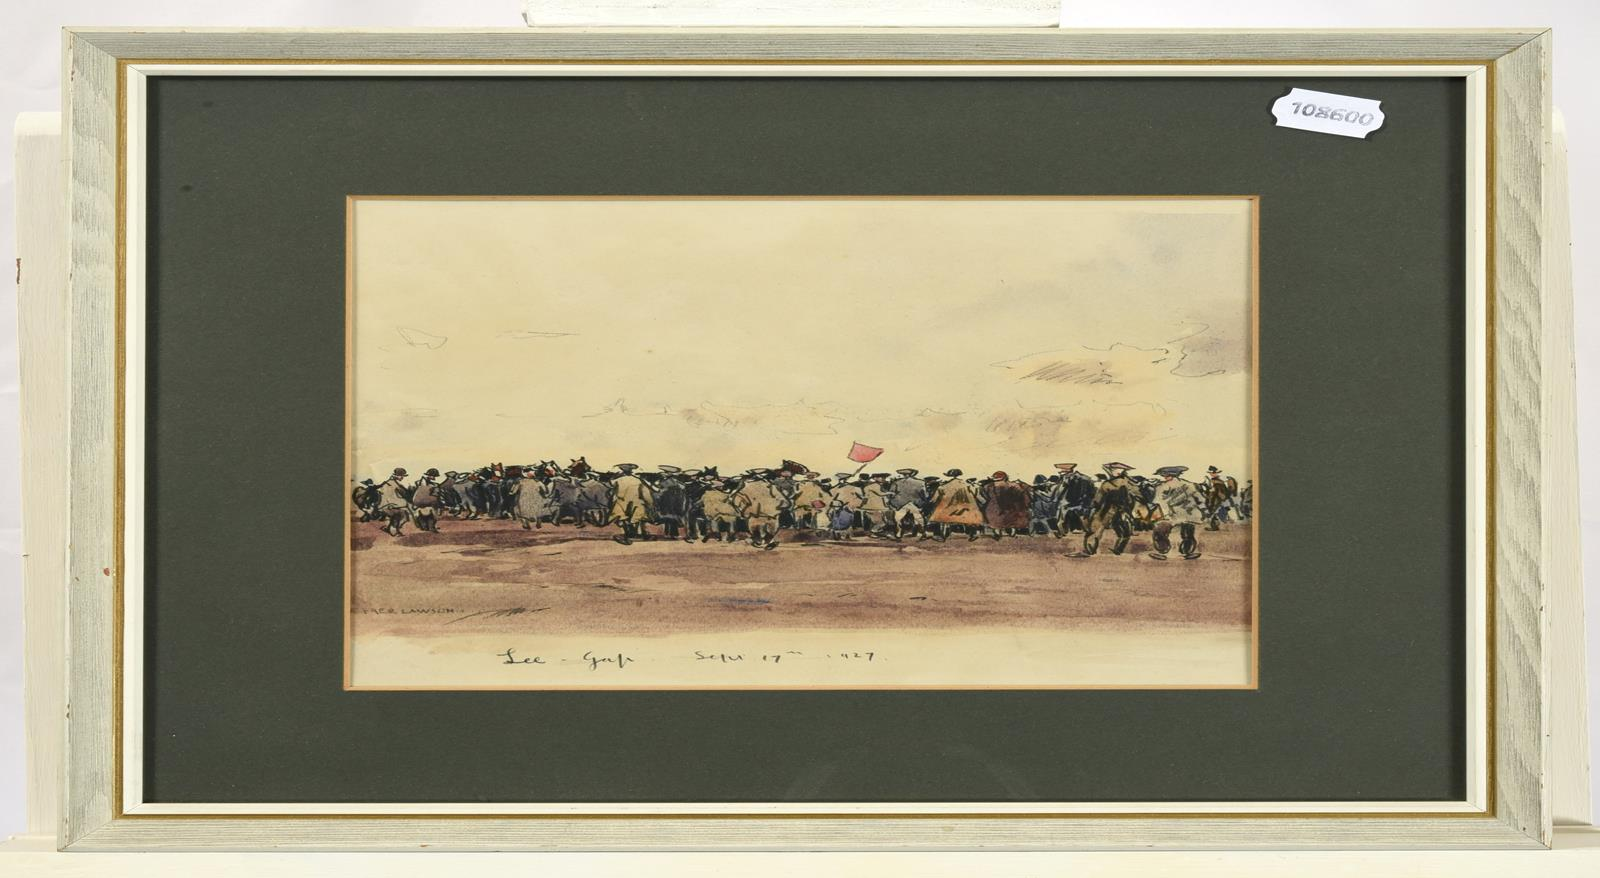 Frederick (Fred) Lawson (1888-1968) ''Lee Gap'' Fair Signed, inscribed and dated Sept. 17th 1927, - Image 2 of 3